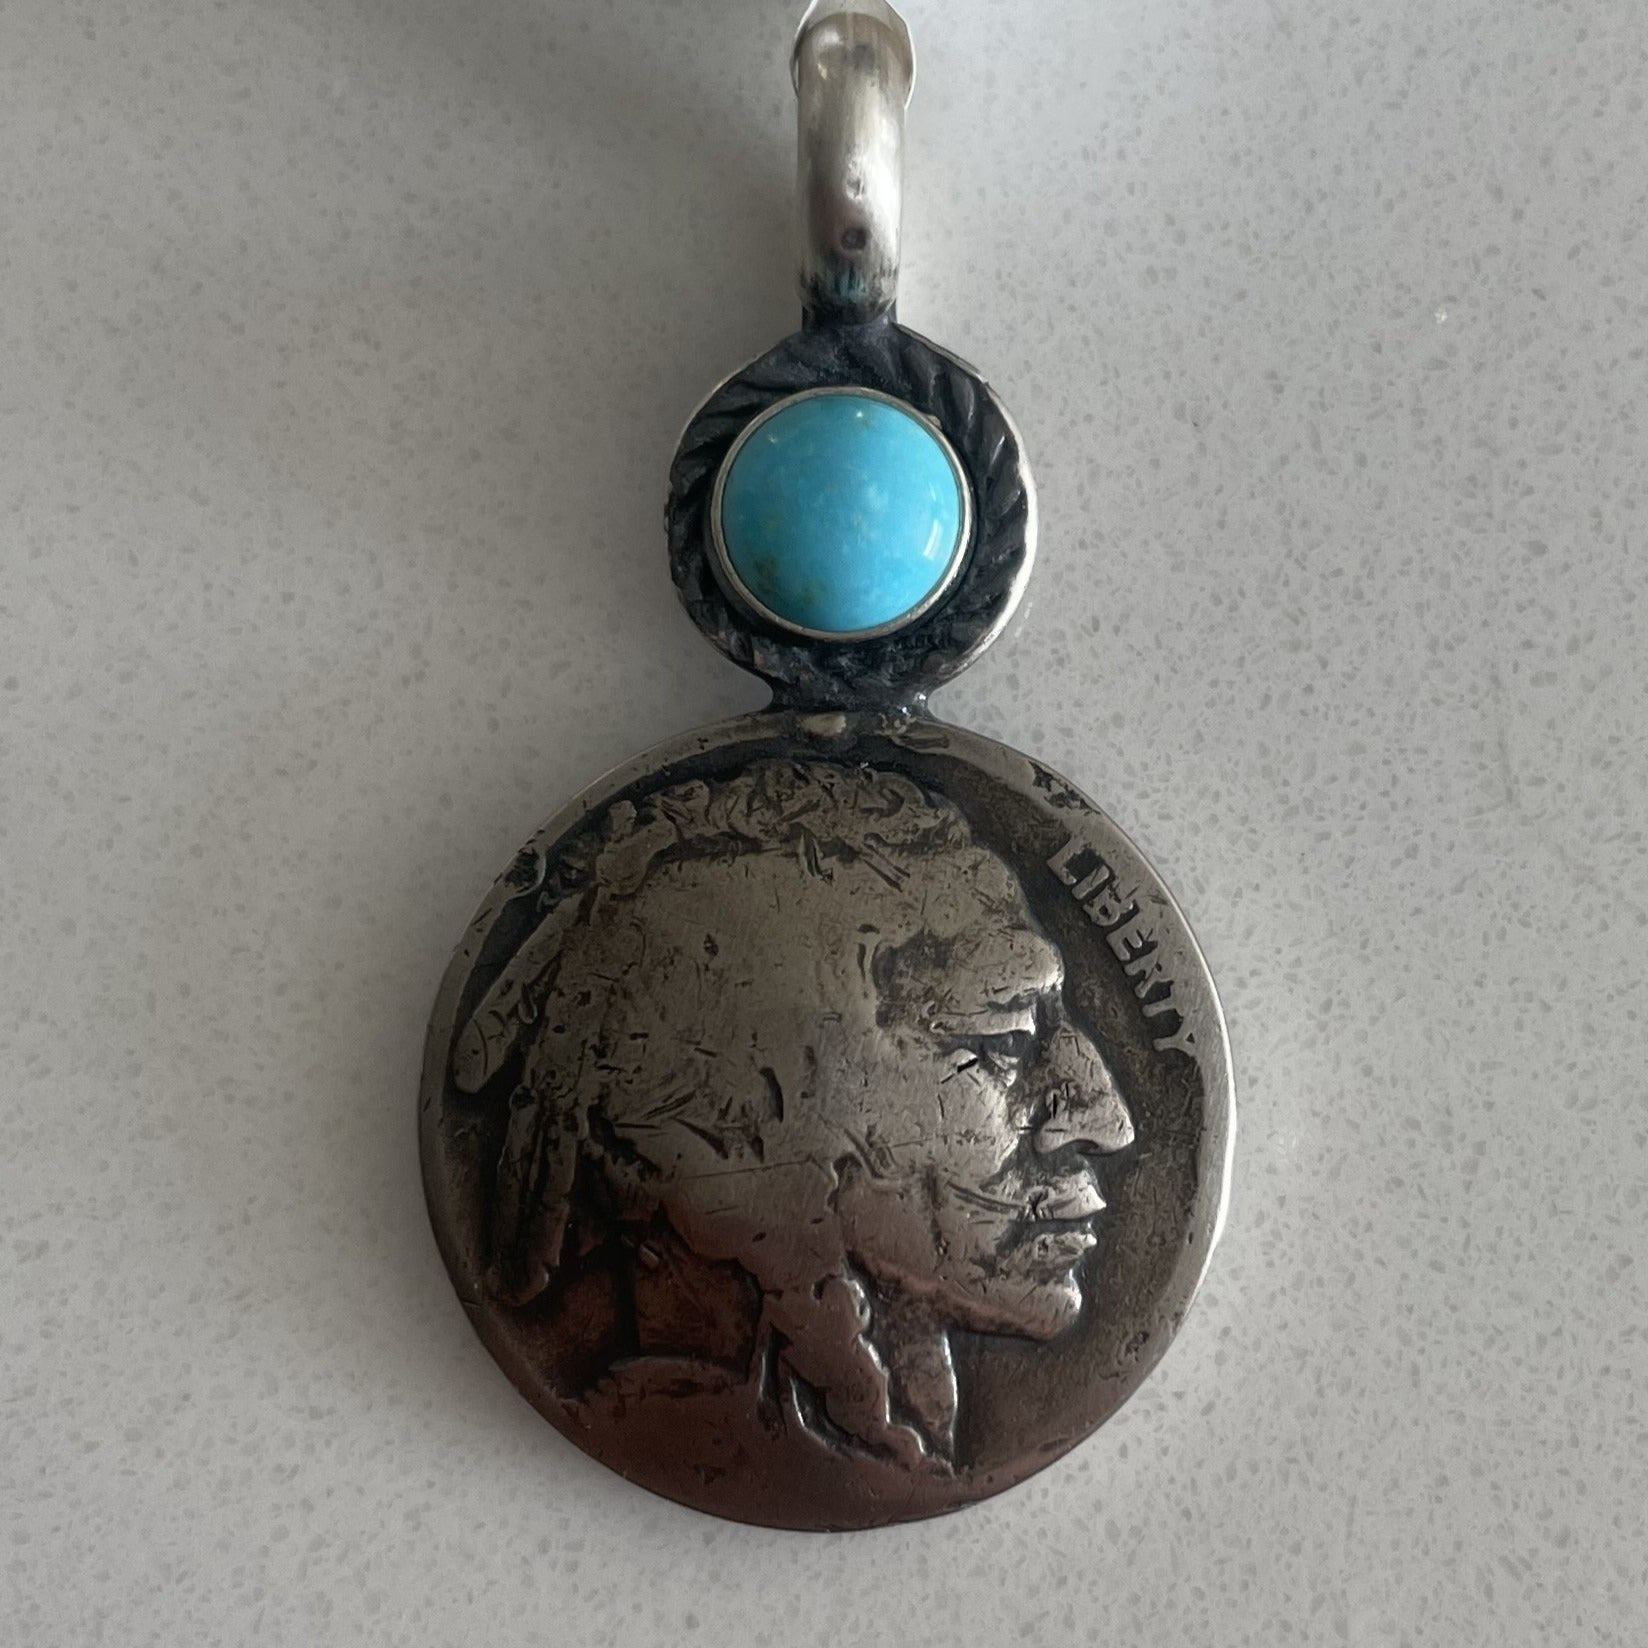 Nickle Pendant